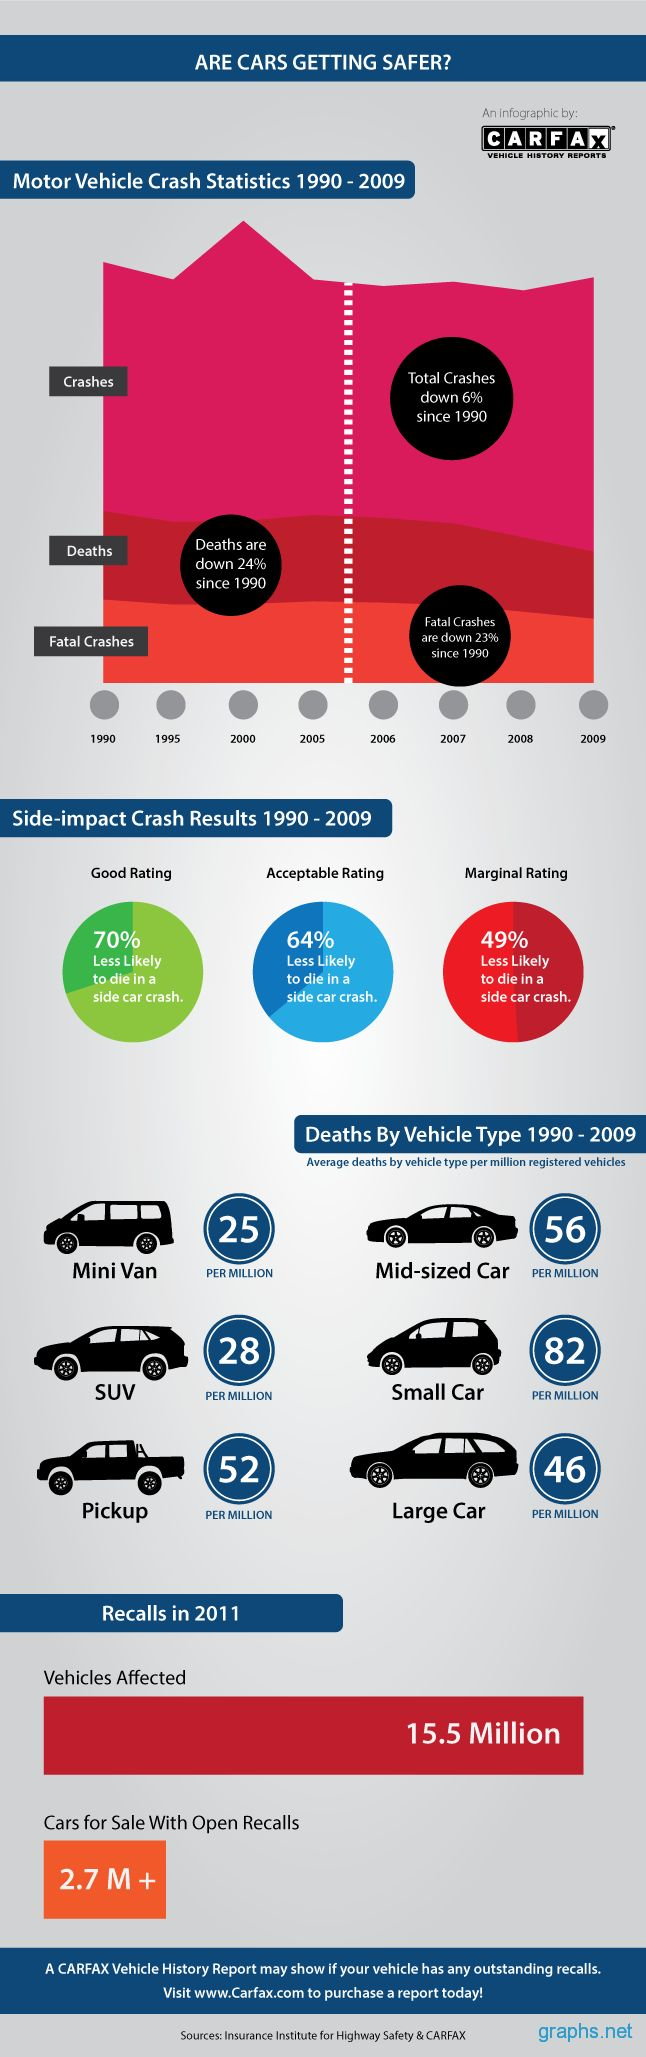 Safest car color accidents - Vehicle Safety Is Important In This Infographic We Take A Look At Motor Vehicle Crash Statistics From 1990 To 2009 To Help Answer The Question Are Cars